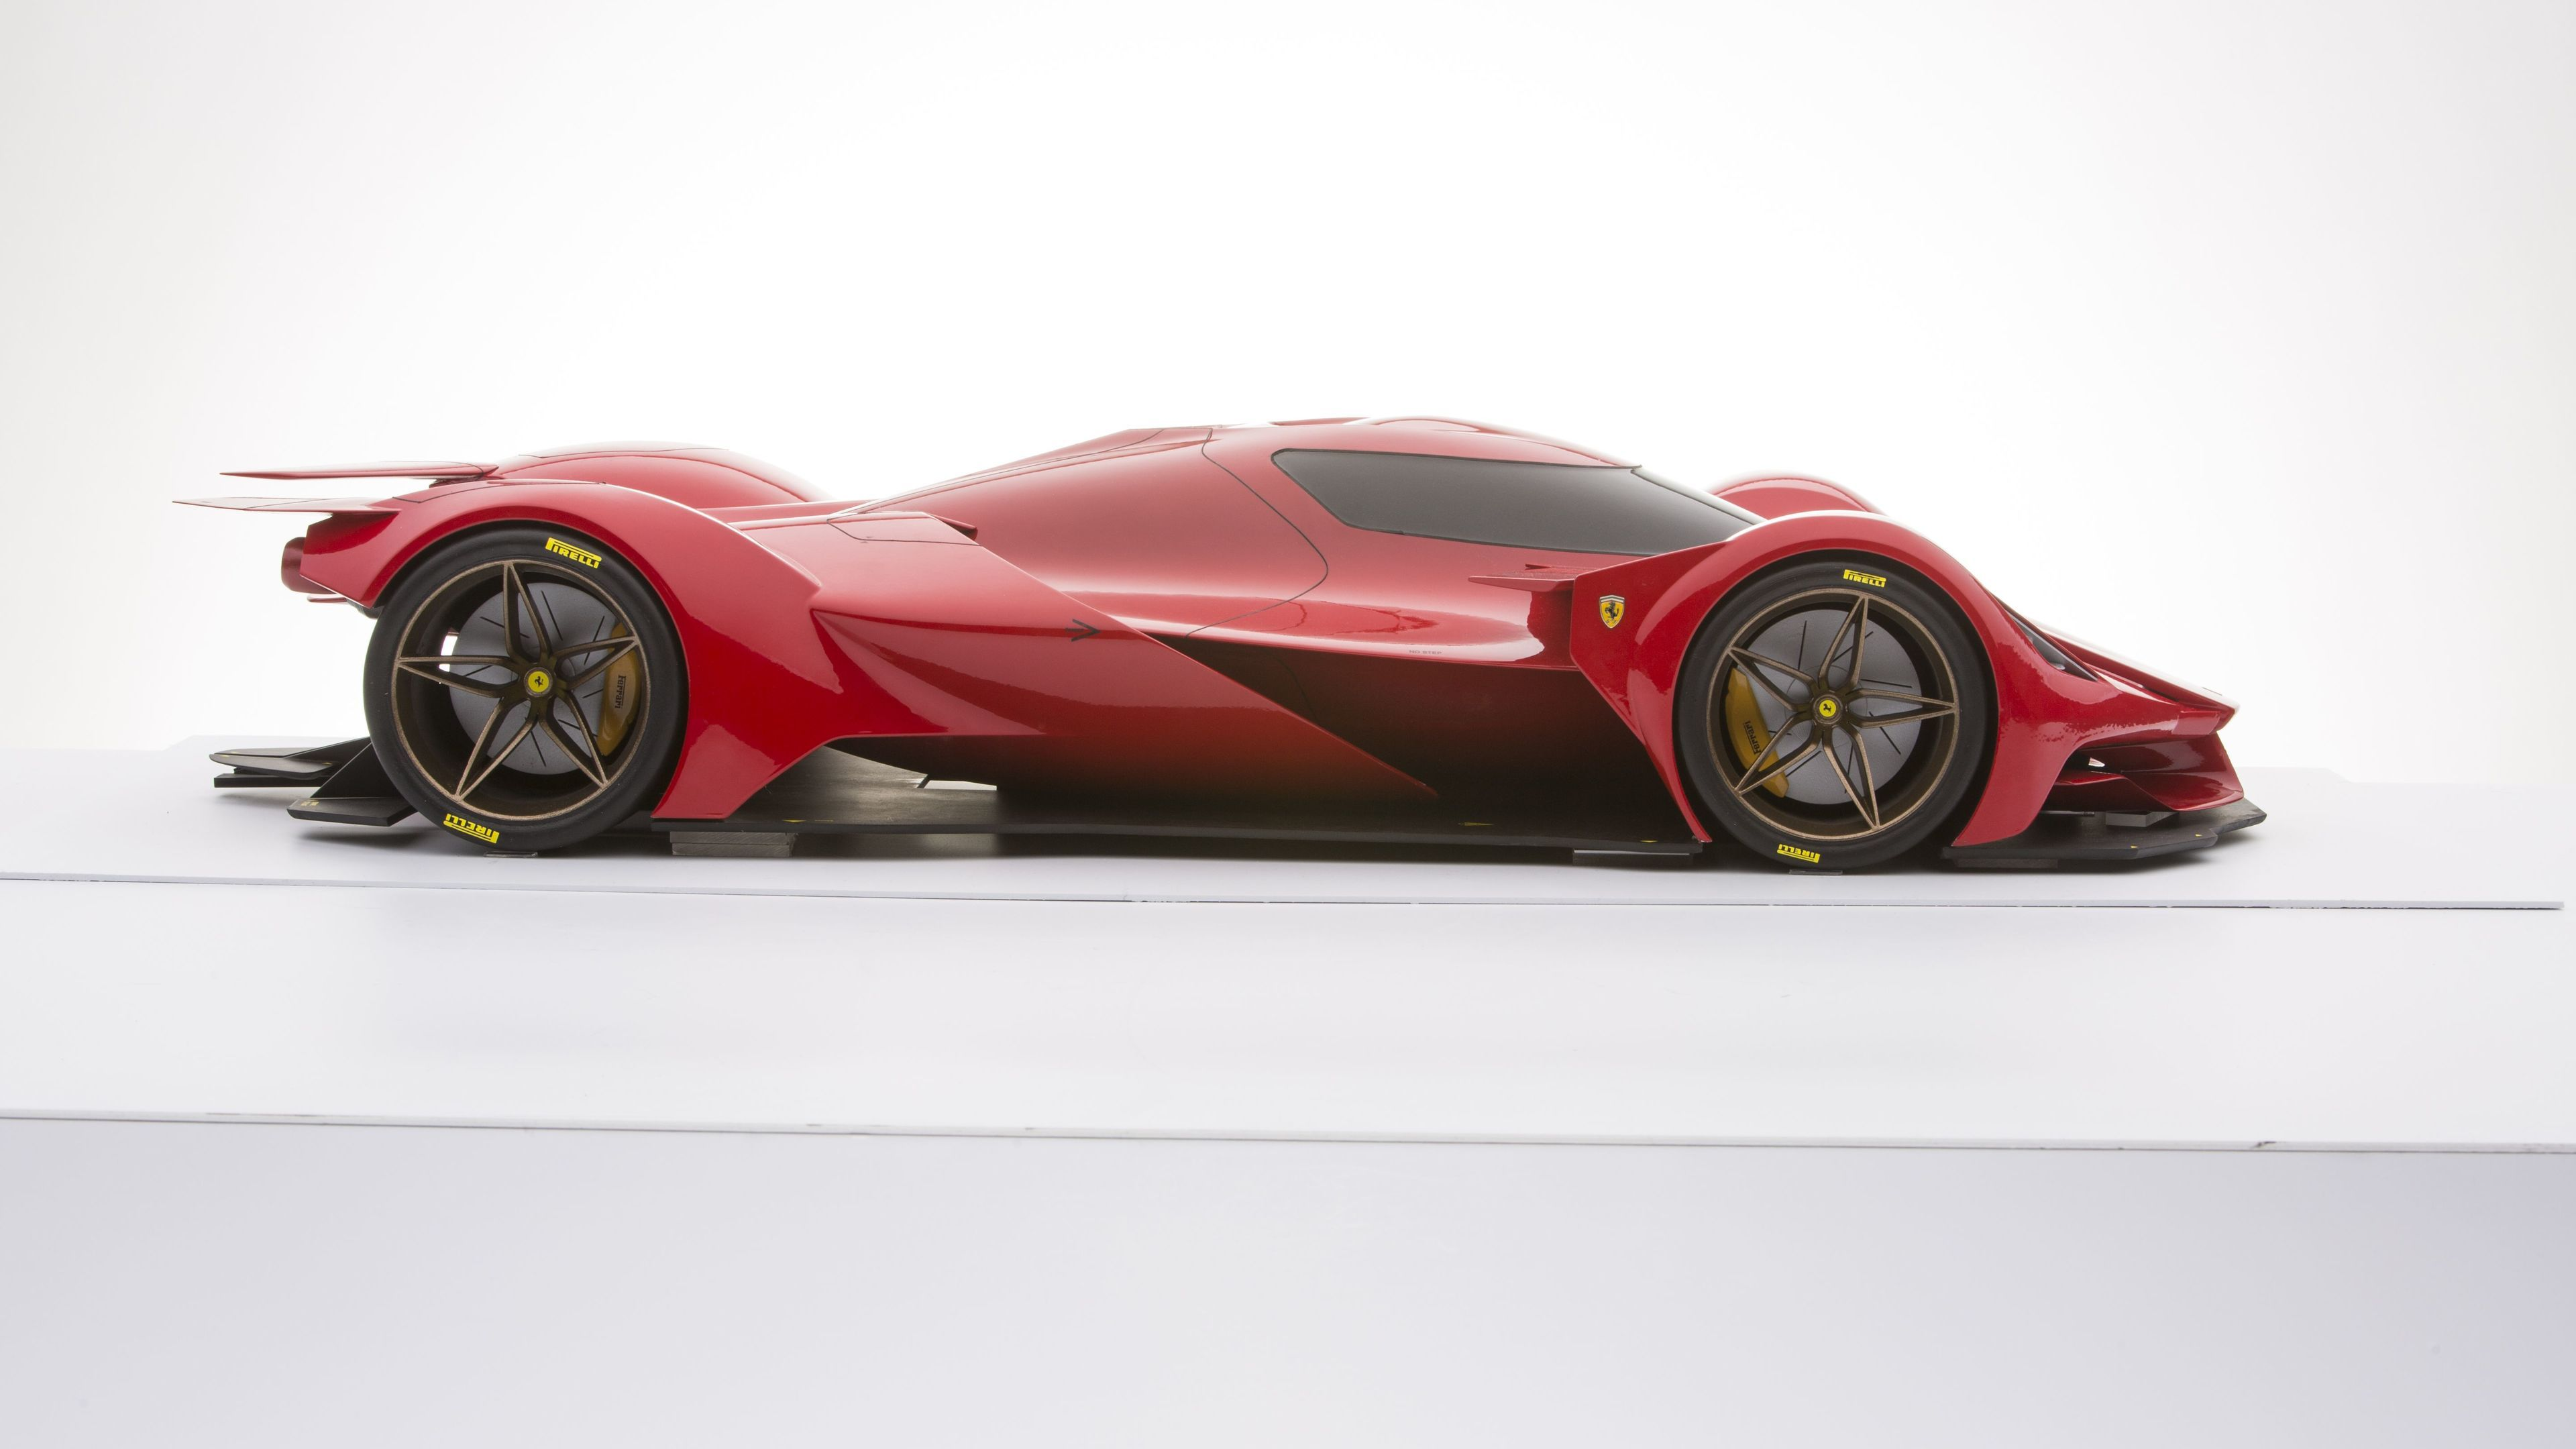 10 Wallpaper Ferrari Gt 2020 In 2020 Ferrari 488 Ferrari Race Cars